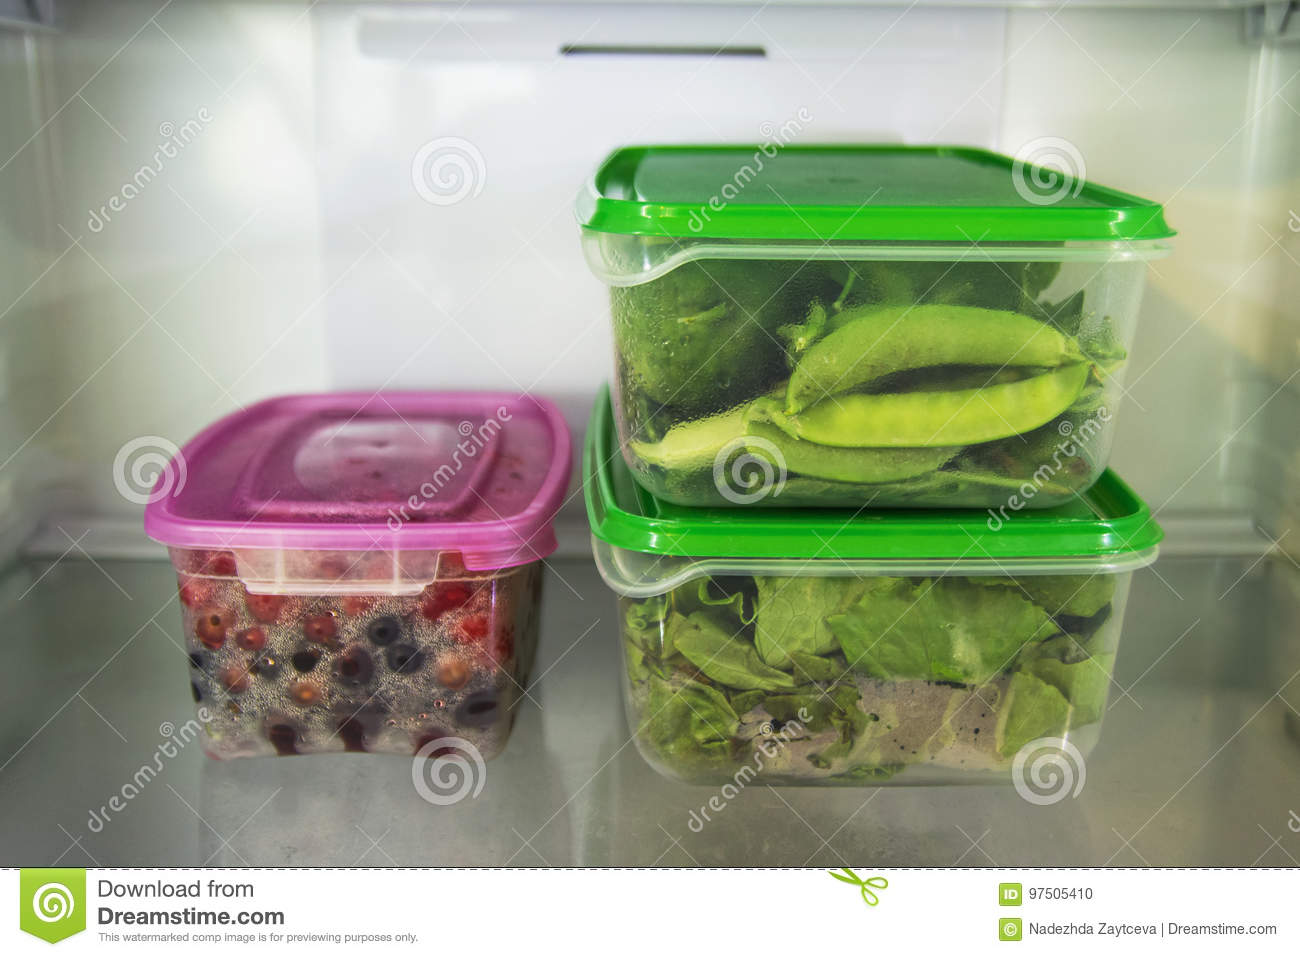 Two plastic food containers with green vegetable and one with berries on a shelf of a fridge.